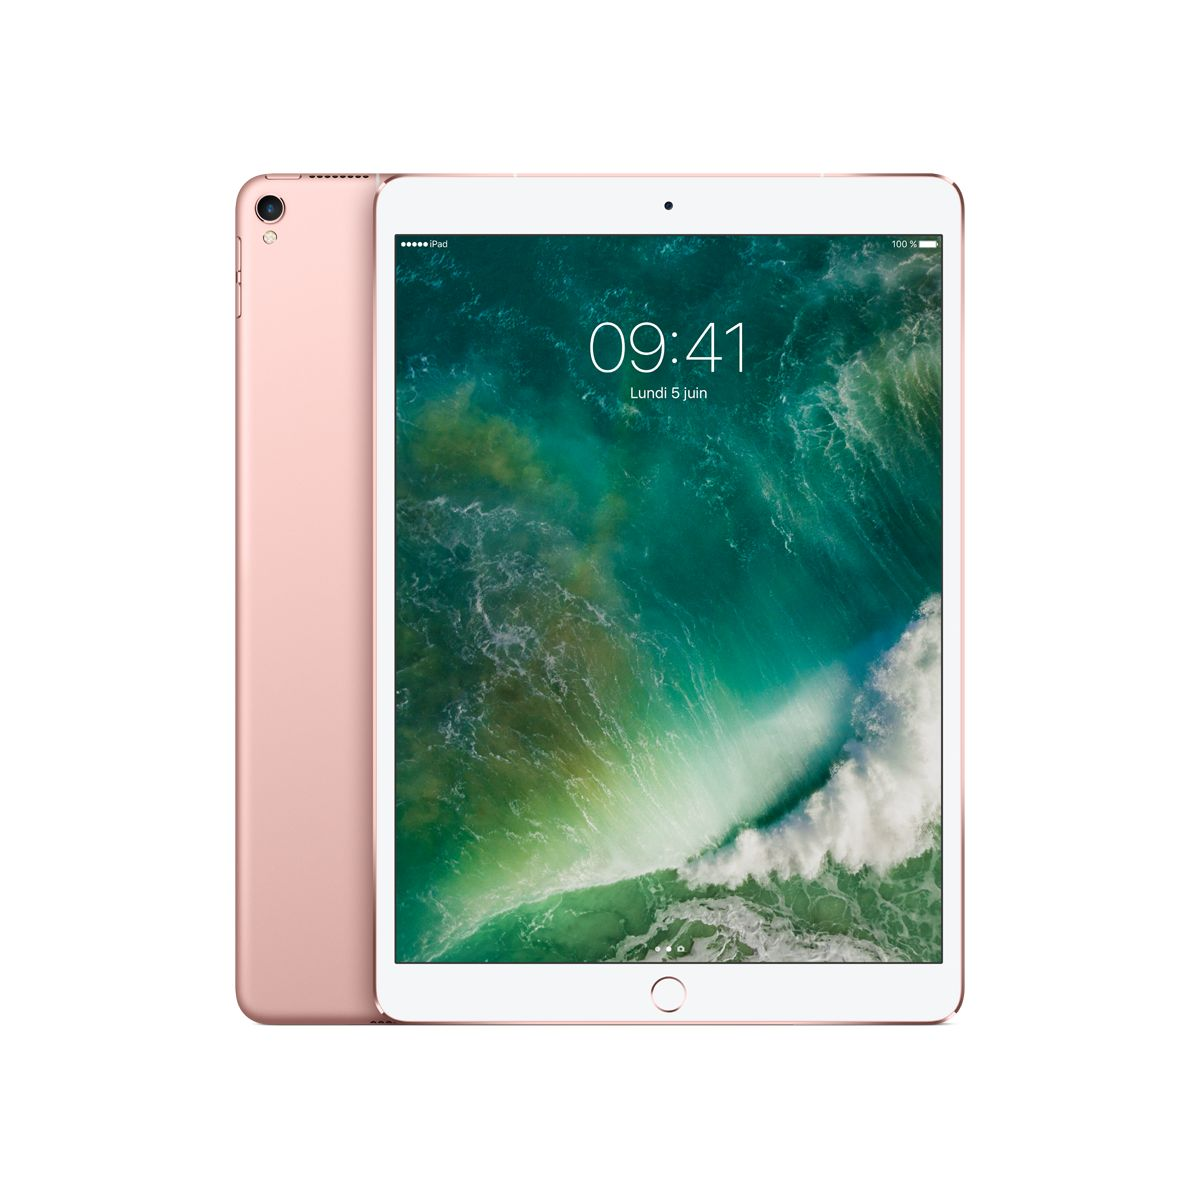 Tablette IPAD Pro 10.5 512Go Cel Or Rose (photo)